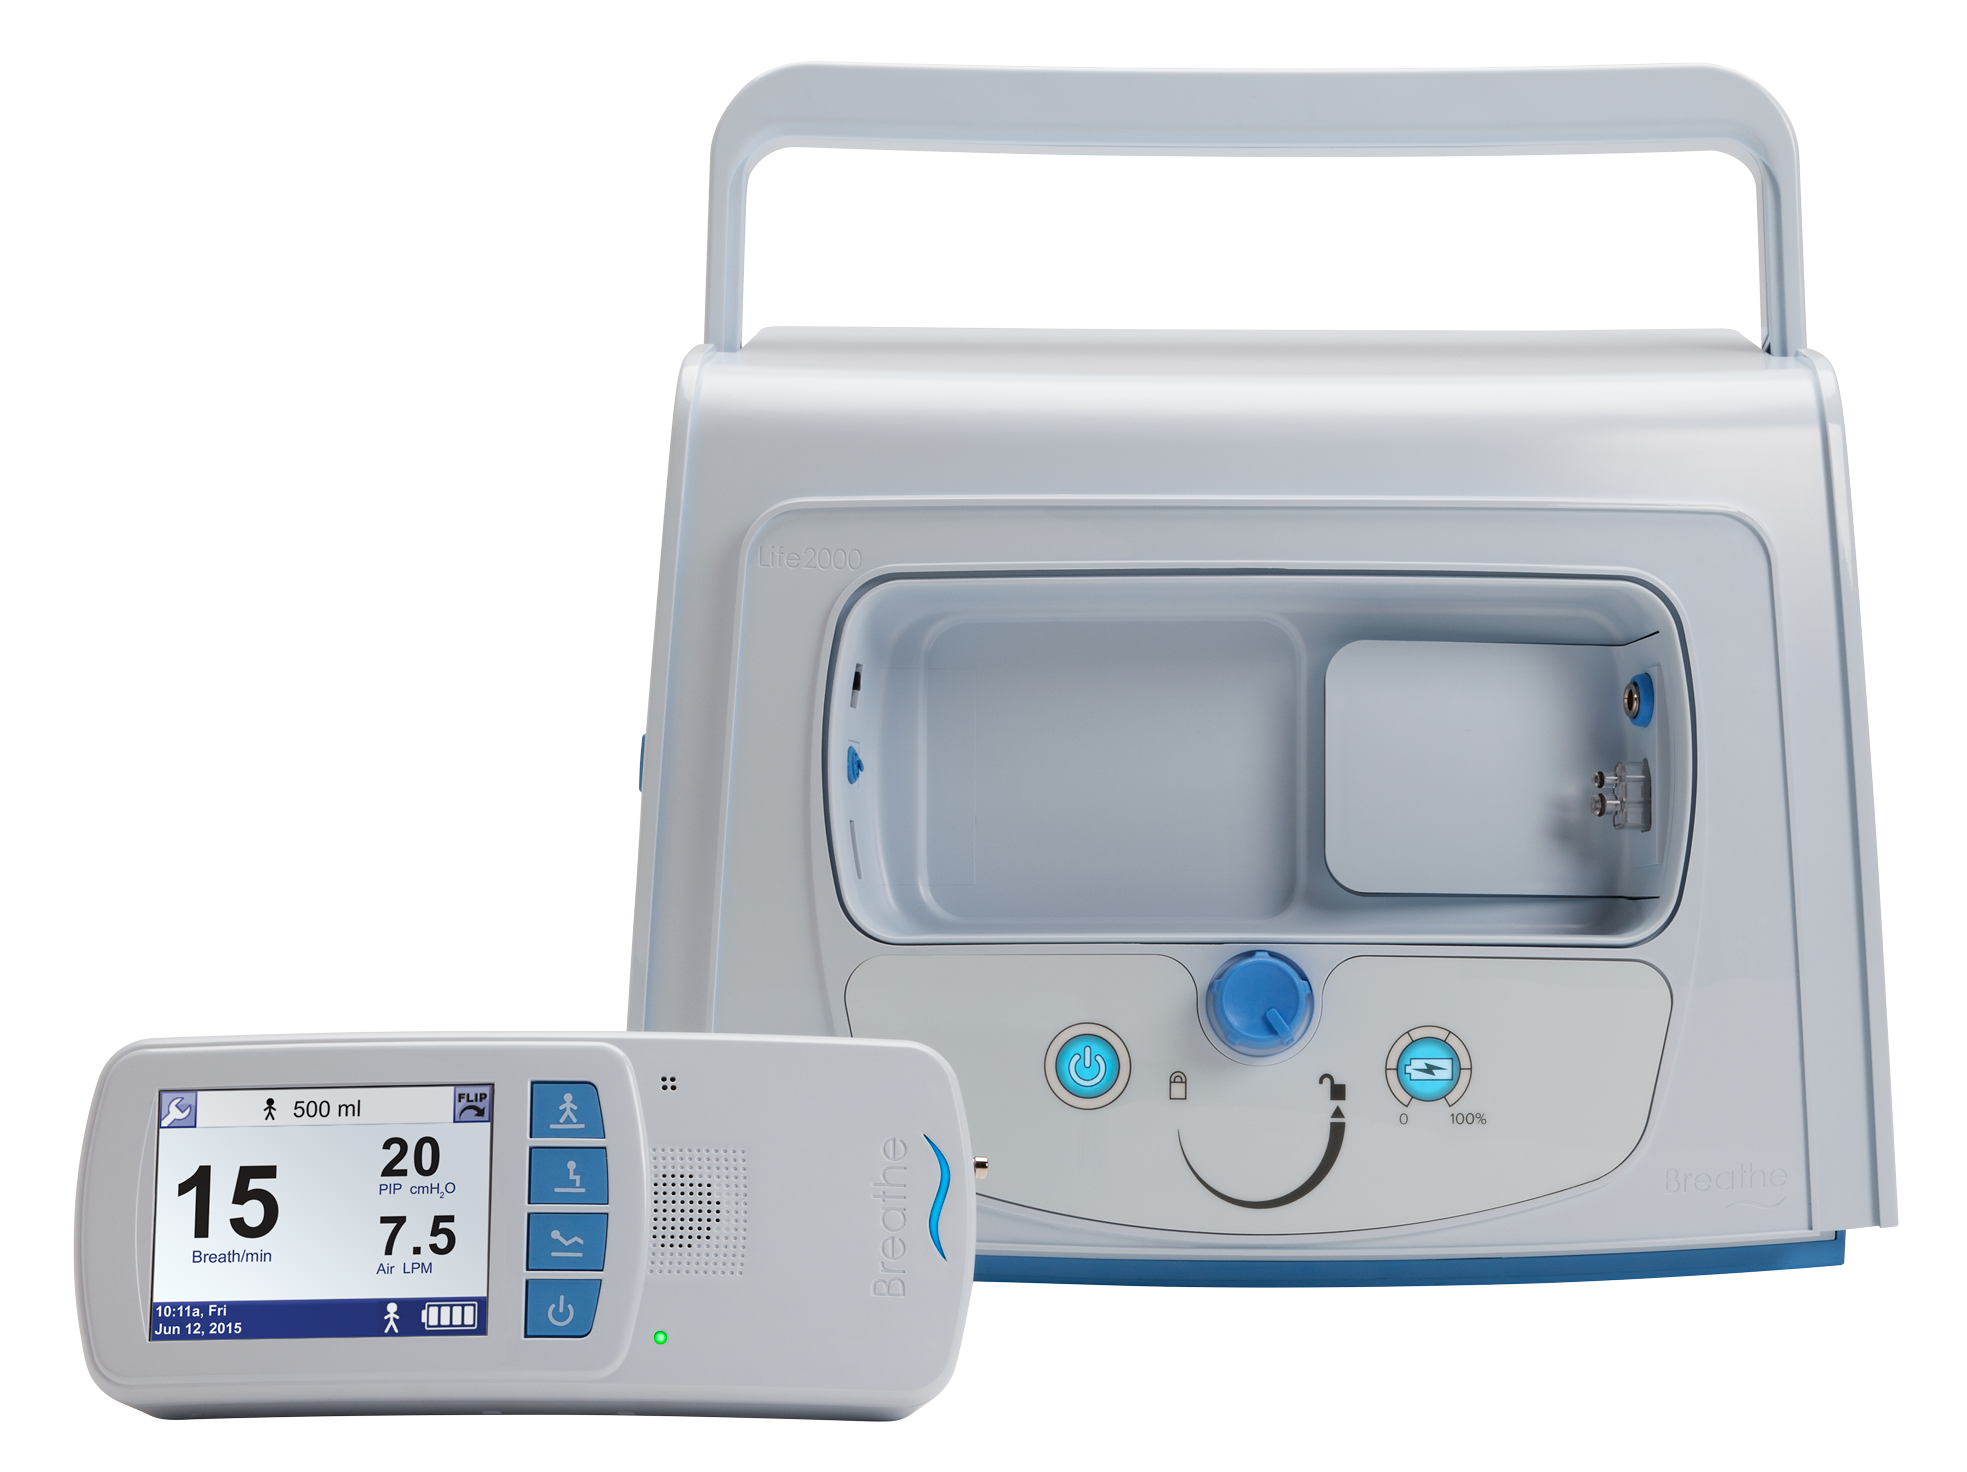 Complete-Ventilator-with-Detachable-Unit-Handle-Up-085_lights.png